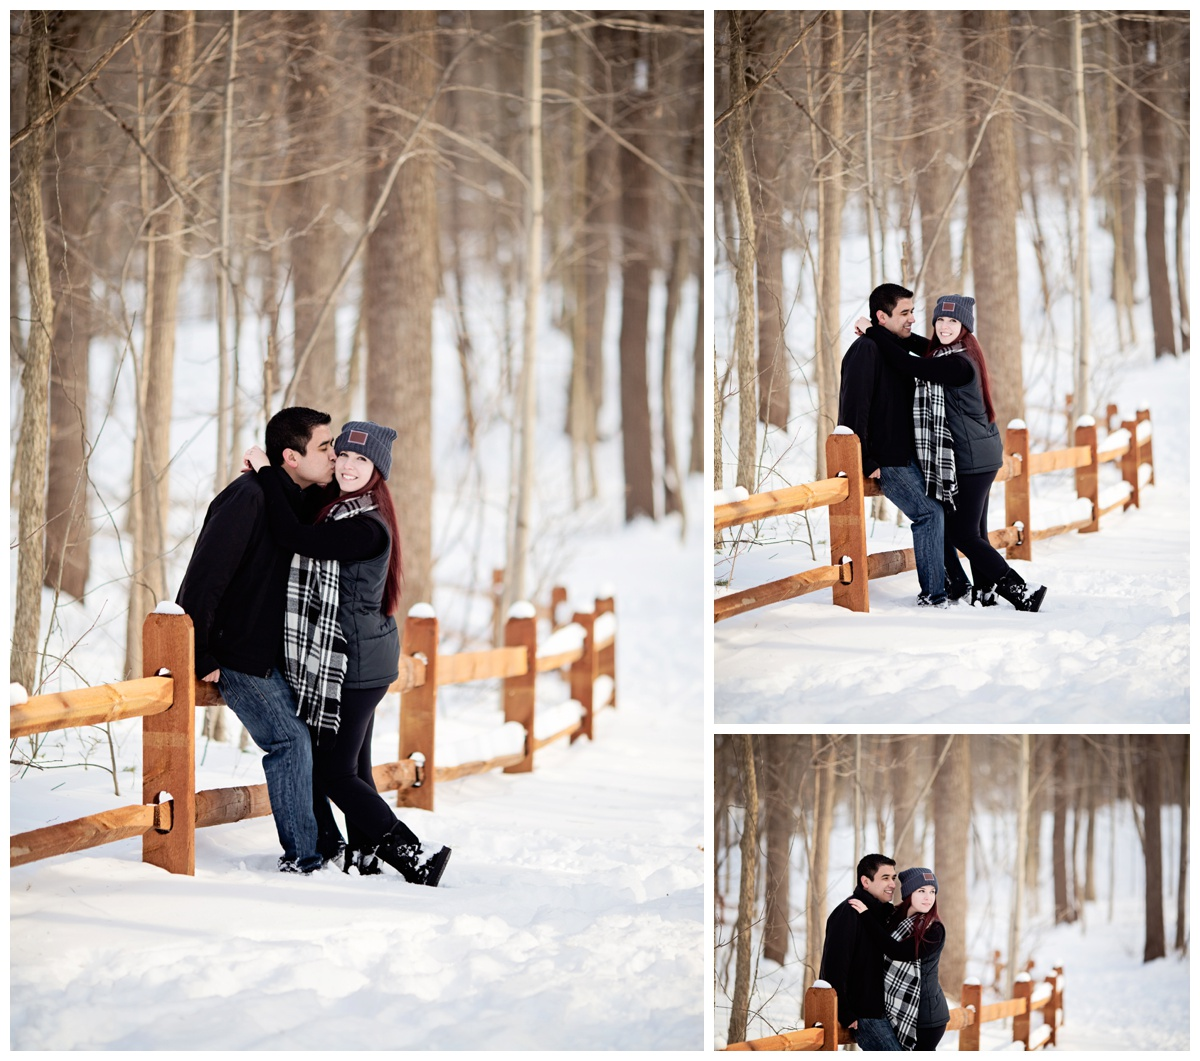 Winter Engagement Photoshoot | Michigan Couples Snow Photoshoot | E-Session | Alyssia Booth's Candid & Studio | Michigan Wedding Photographer | www.abcandidstudio.com